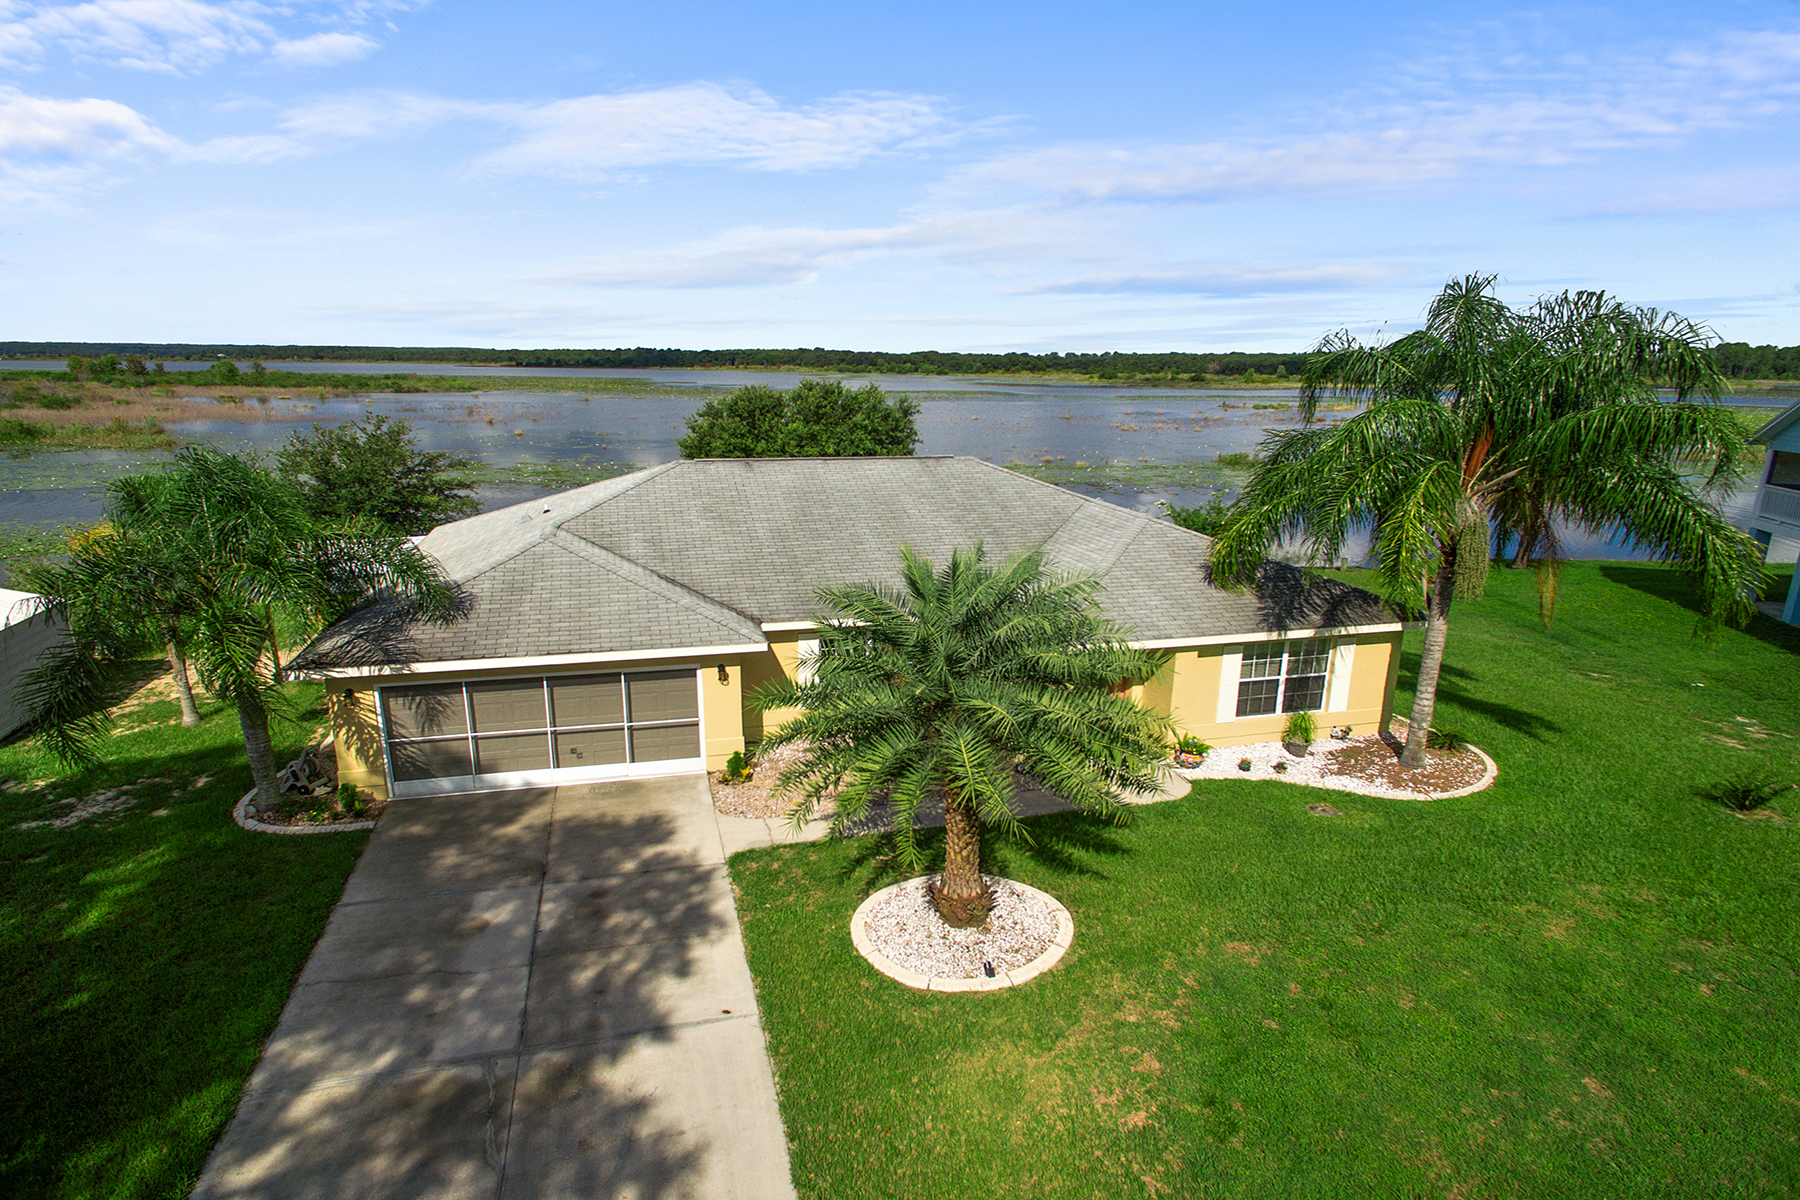 Single Family Homes for Sale at ORLANDO - SALT SPRINGS 14560 Ne 248th Ave Salt Springs, Florida 32134 United States